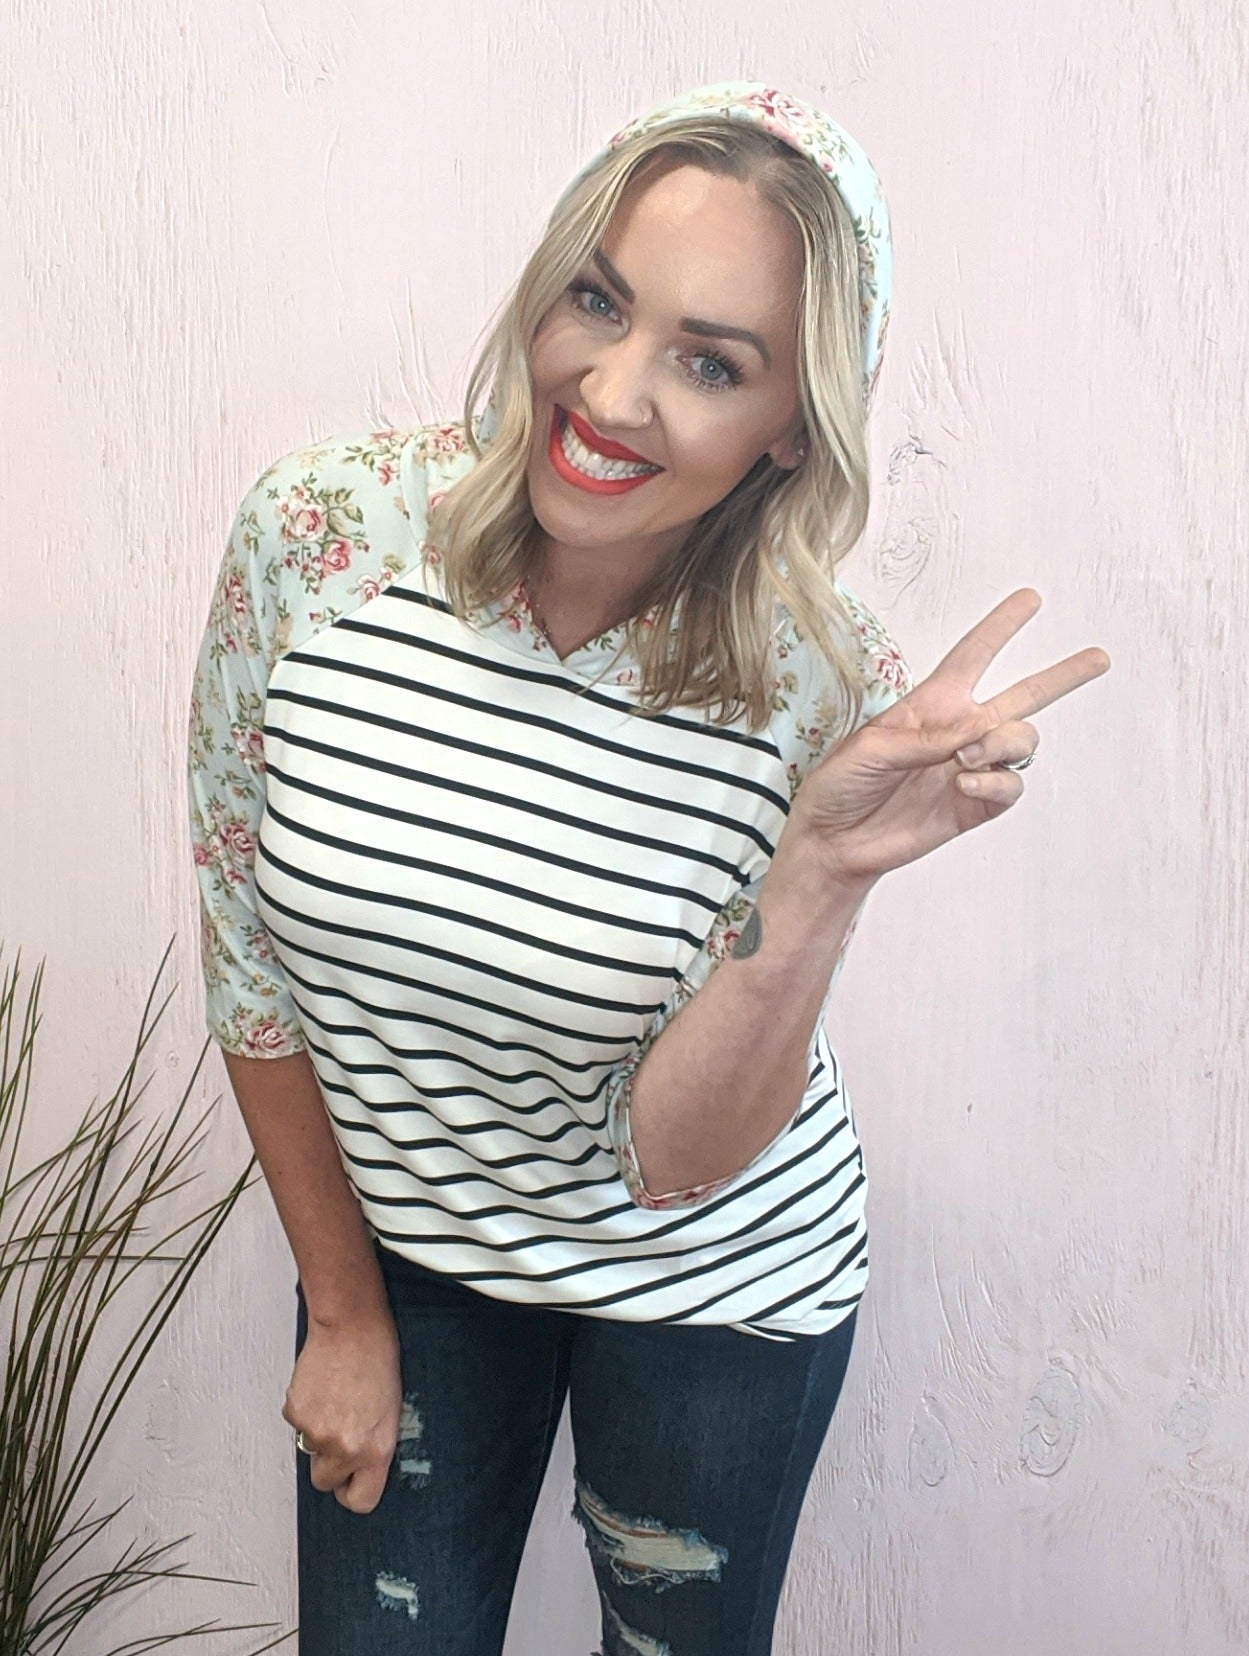 Sidney Stripe & Floral Top